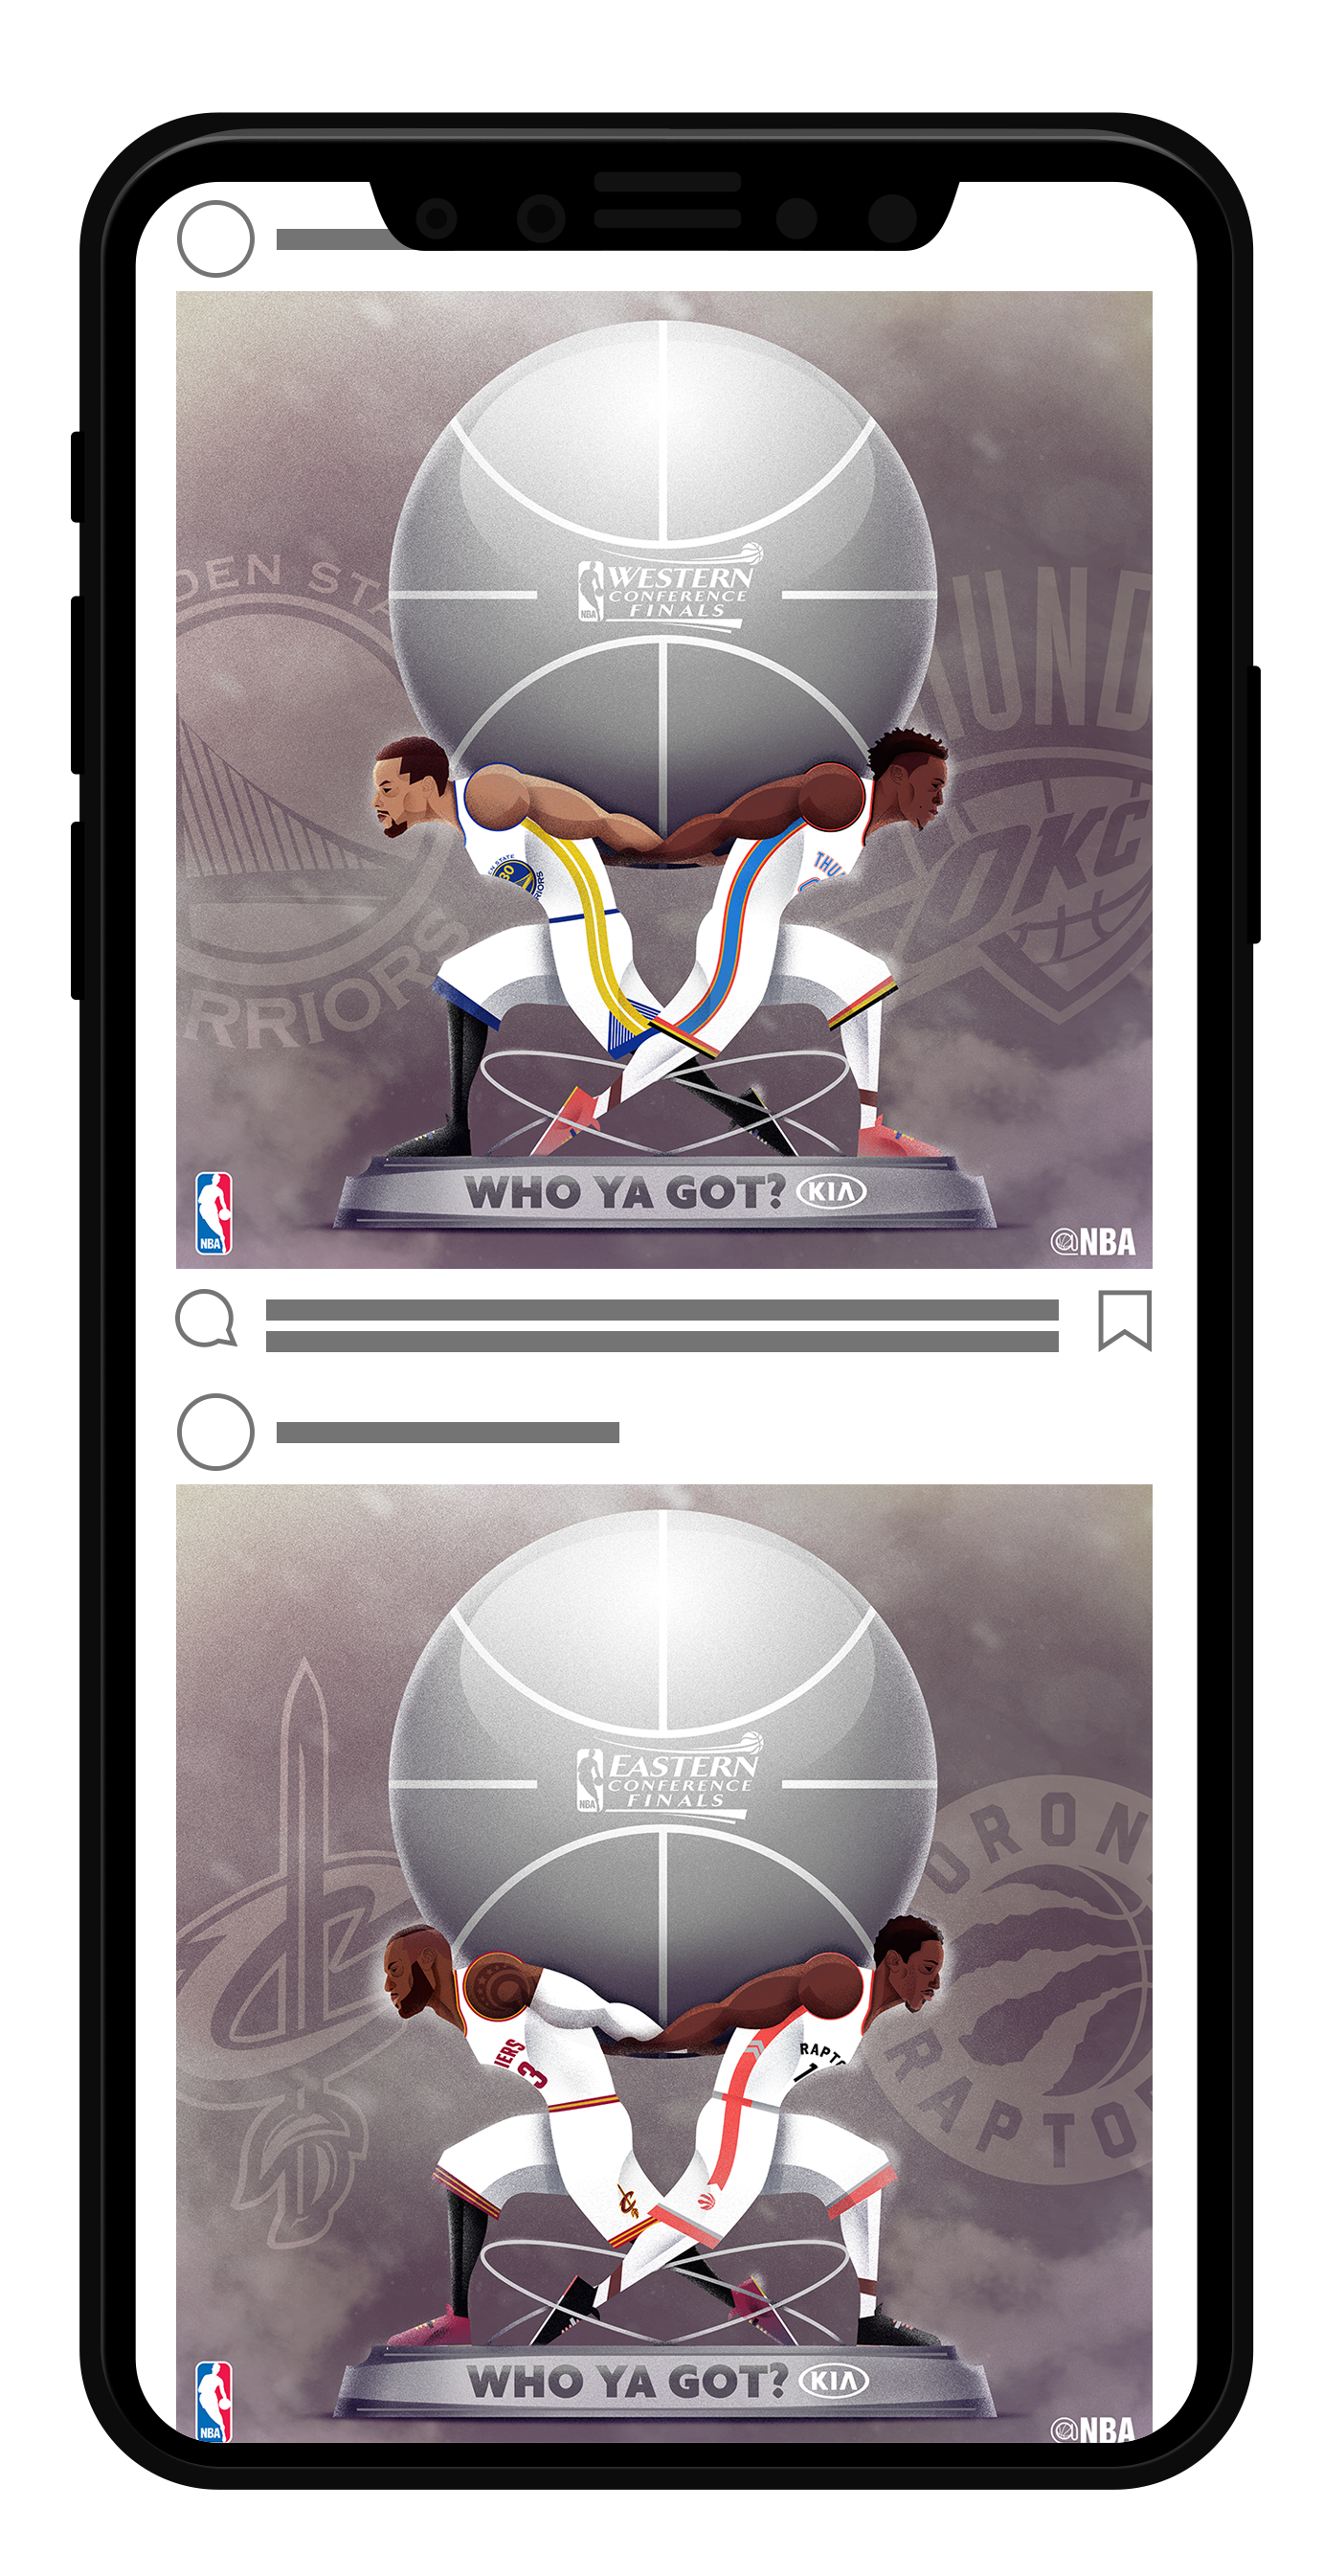 iphone_nba3